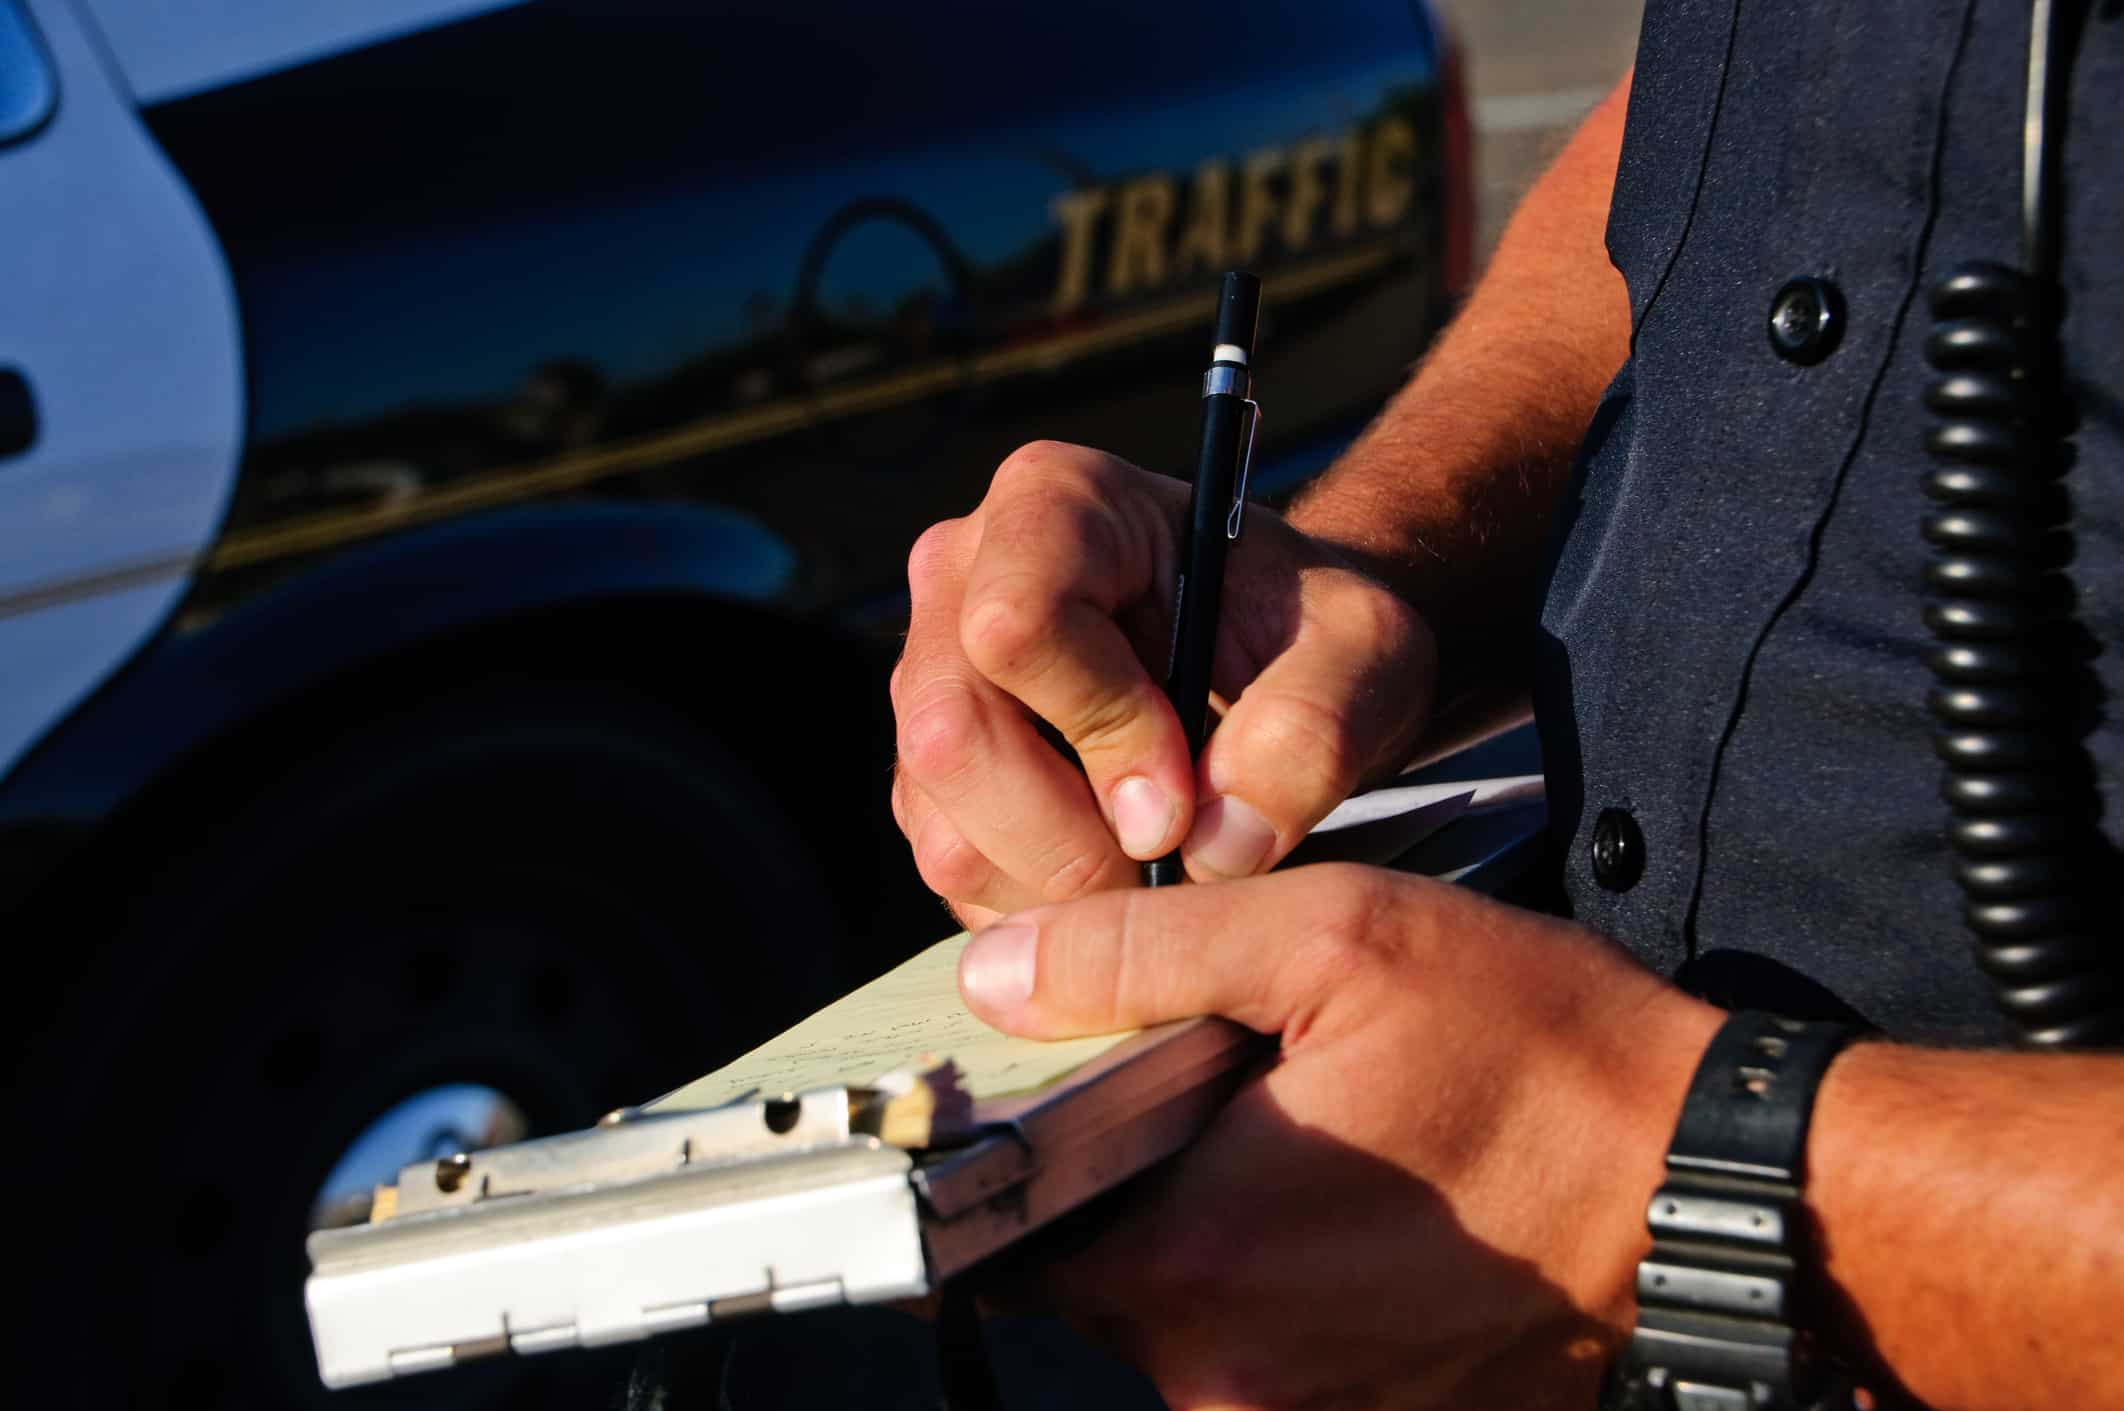 can i recover damages even if i was issued a ticket